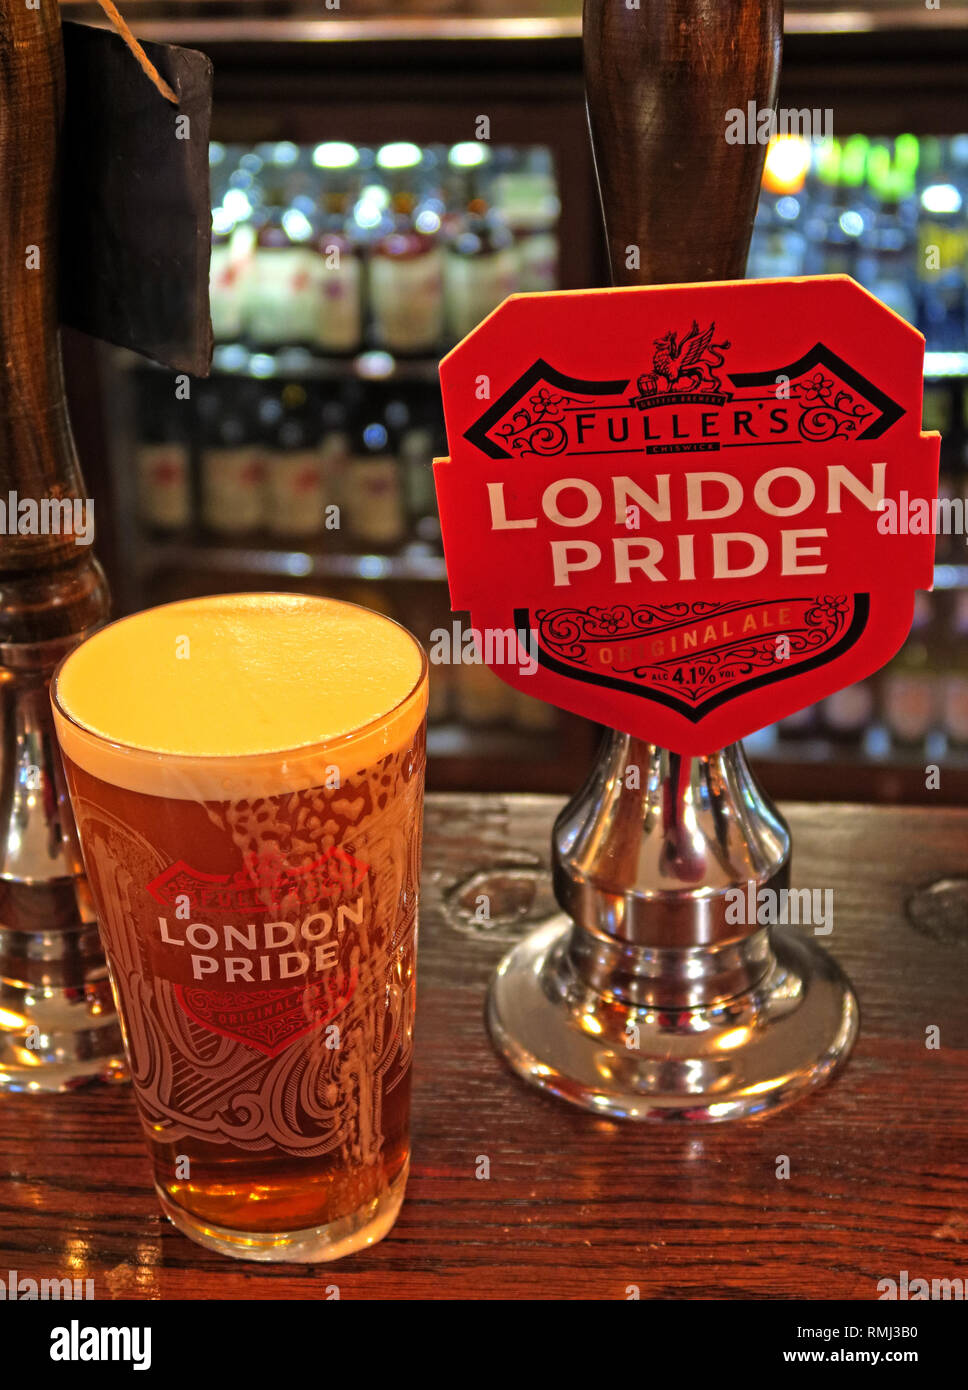 Fullers London Pride hand pump on a bar / pub, North West England, Best bitter, CAMRA ale alcoholic beverage, brewed in Chiswick, West London - Stock Image